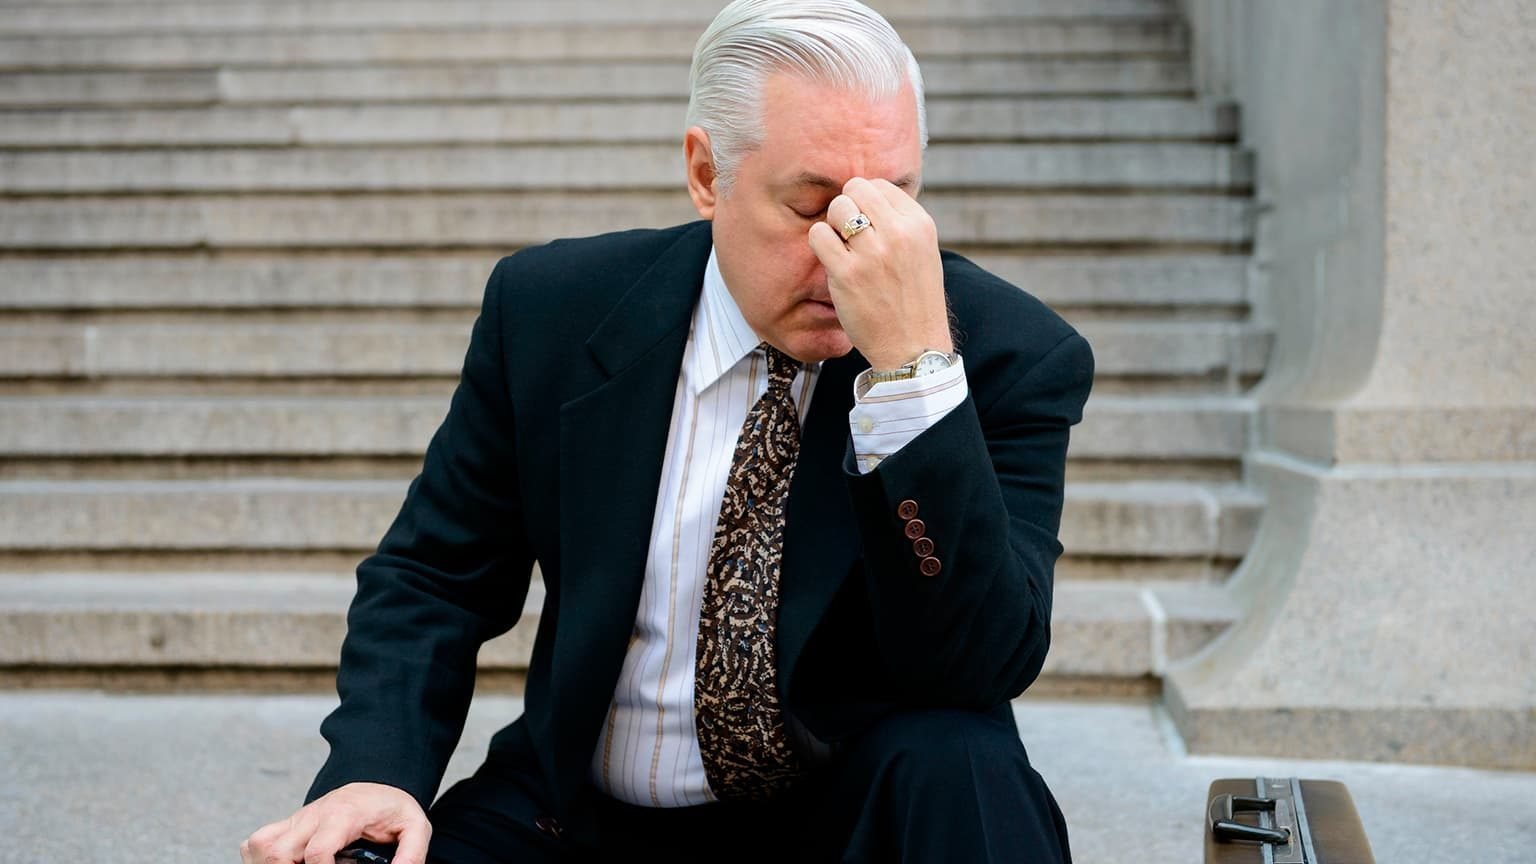 Older business man showing frustration while sitting on steps